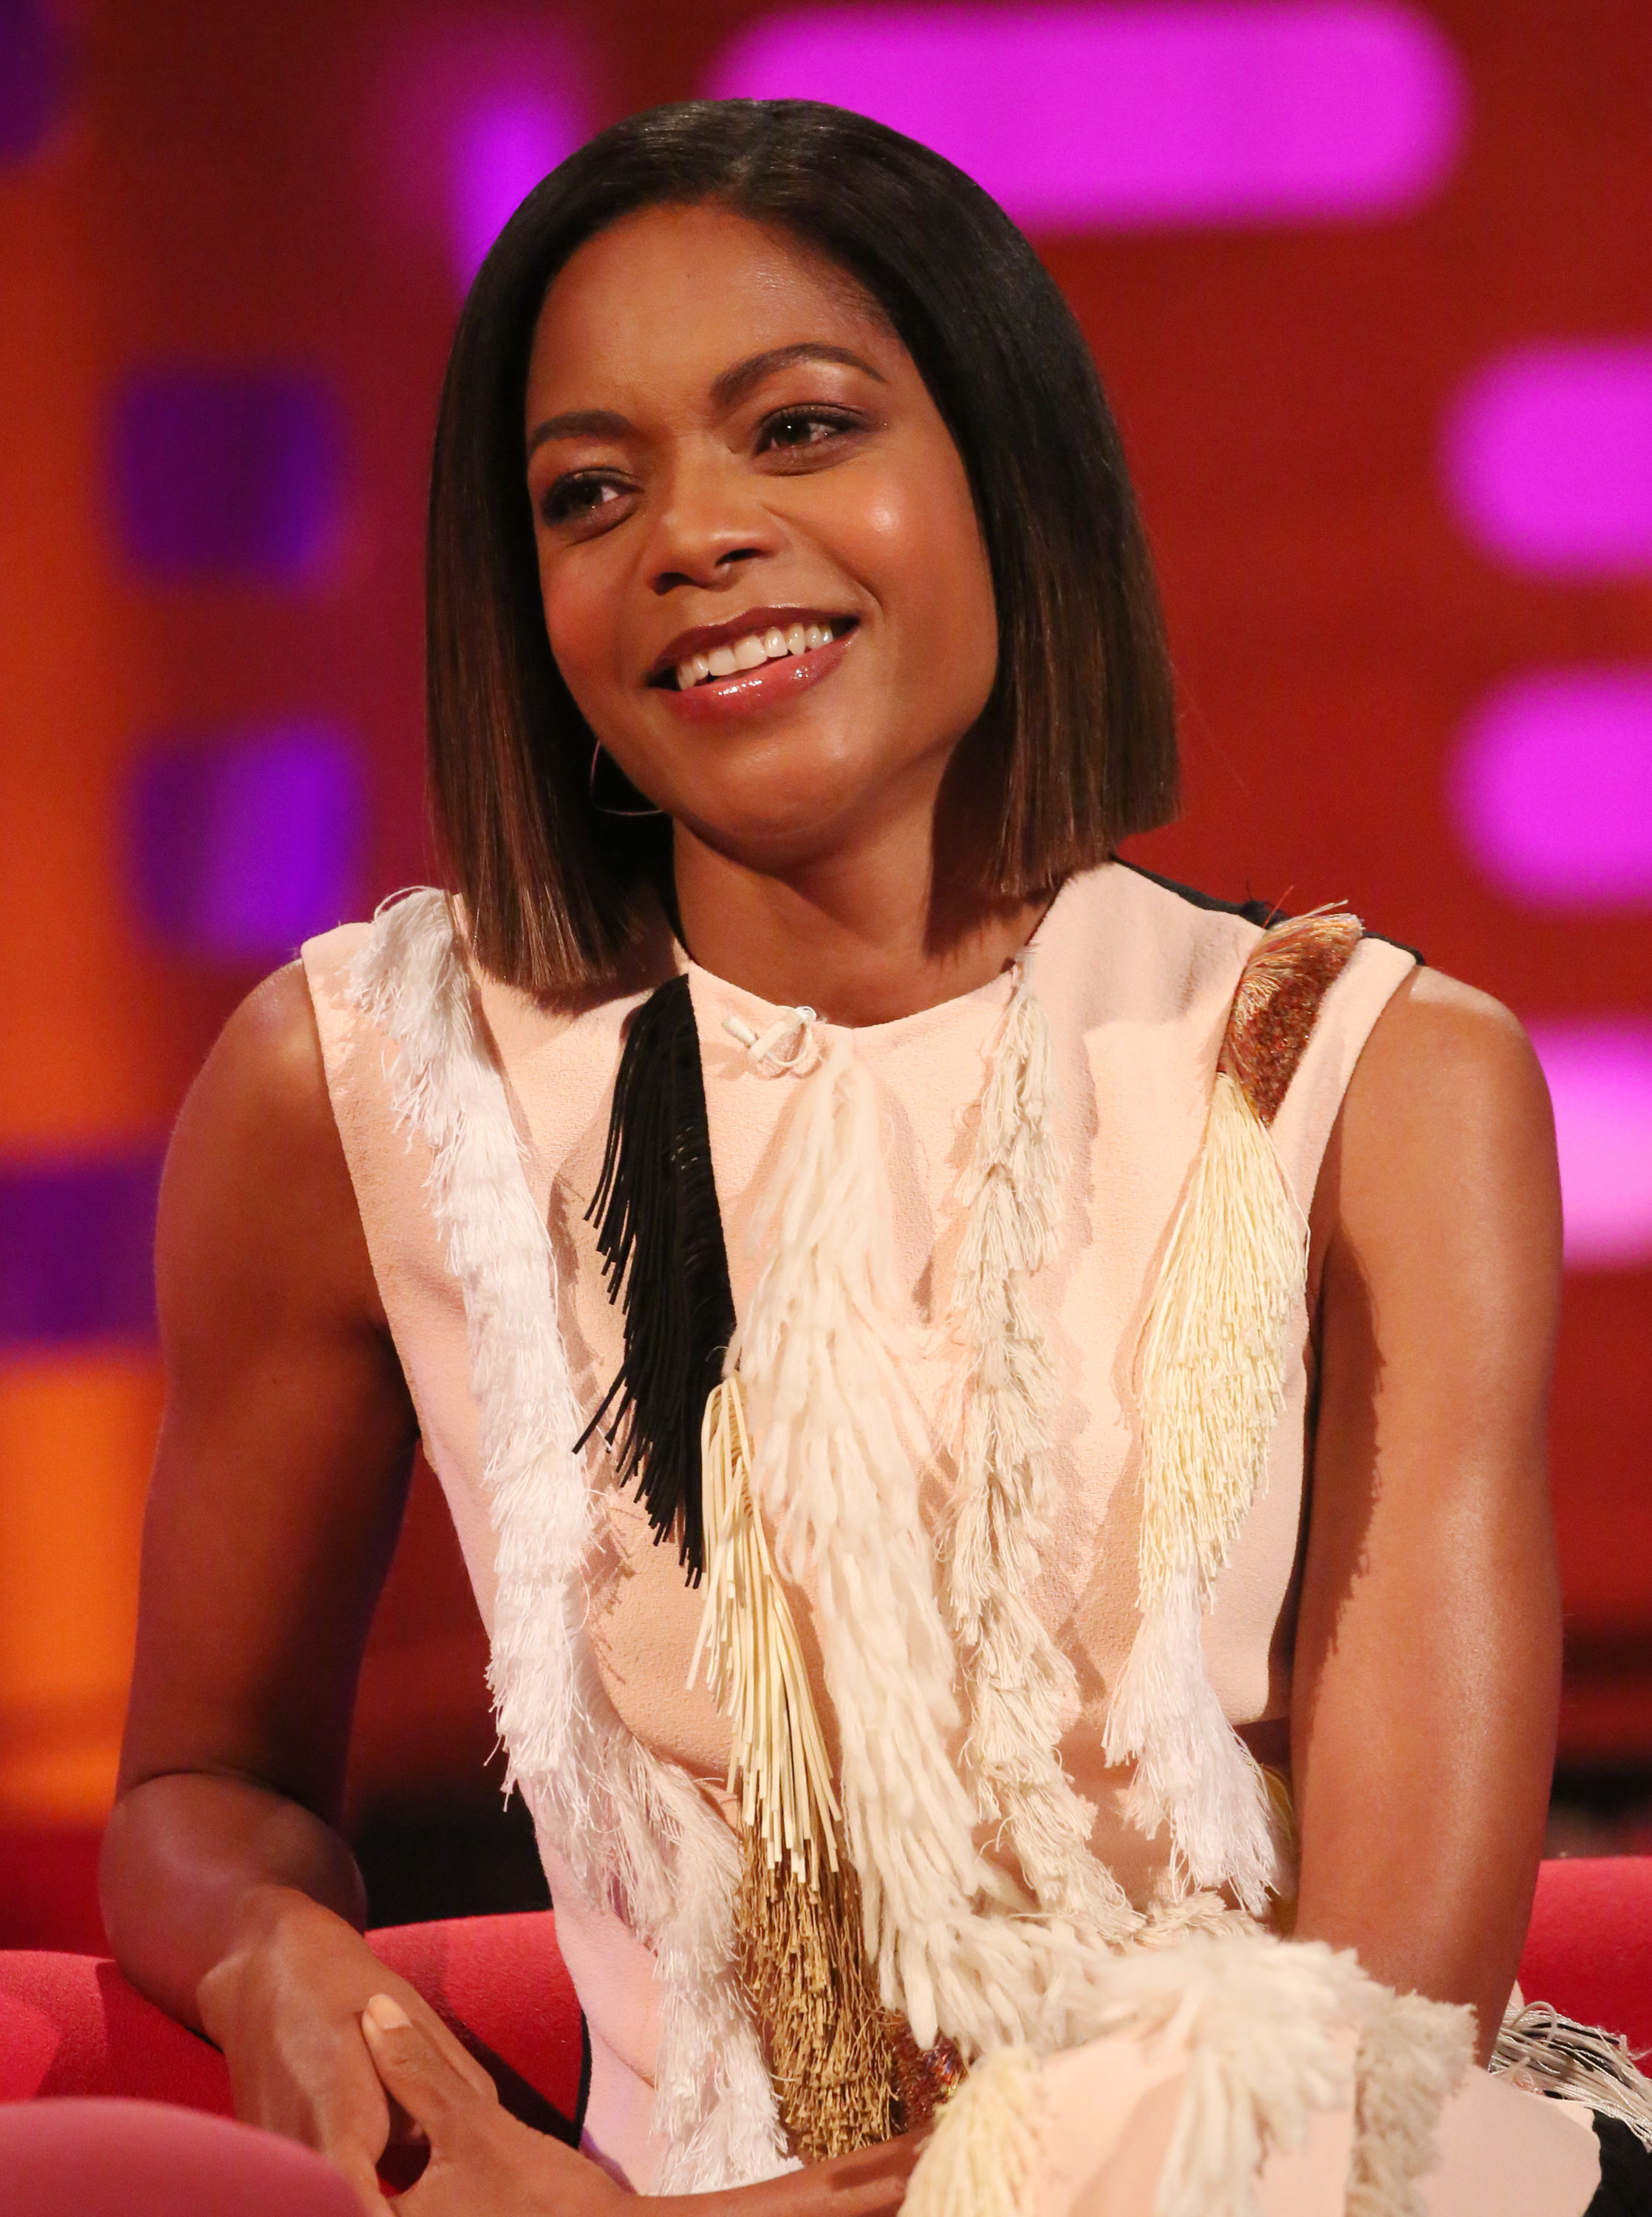 File photo dated 12/4/2018 of James Bond star Naomie Harris, who will co-star with Jude Law in a new TV drama.